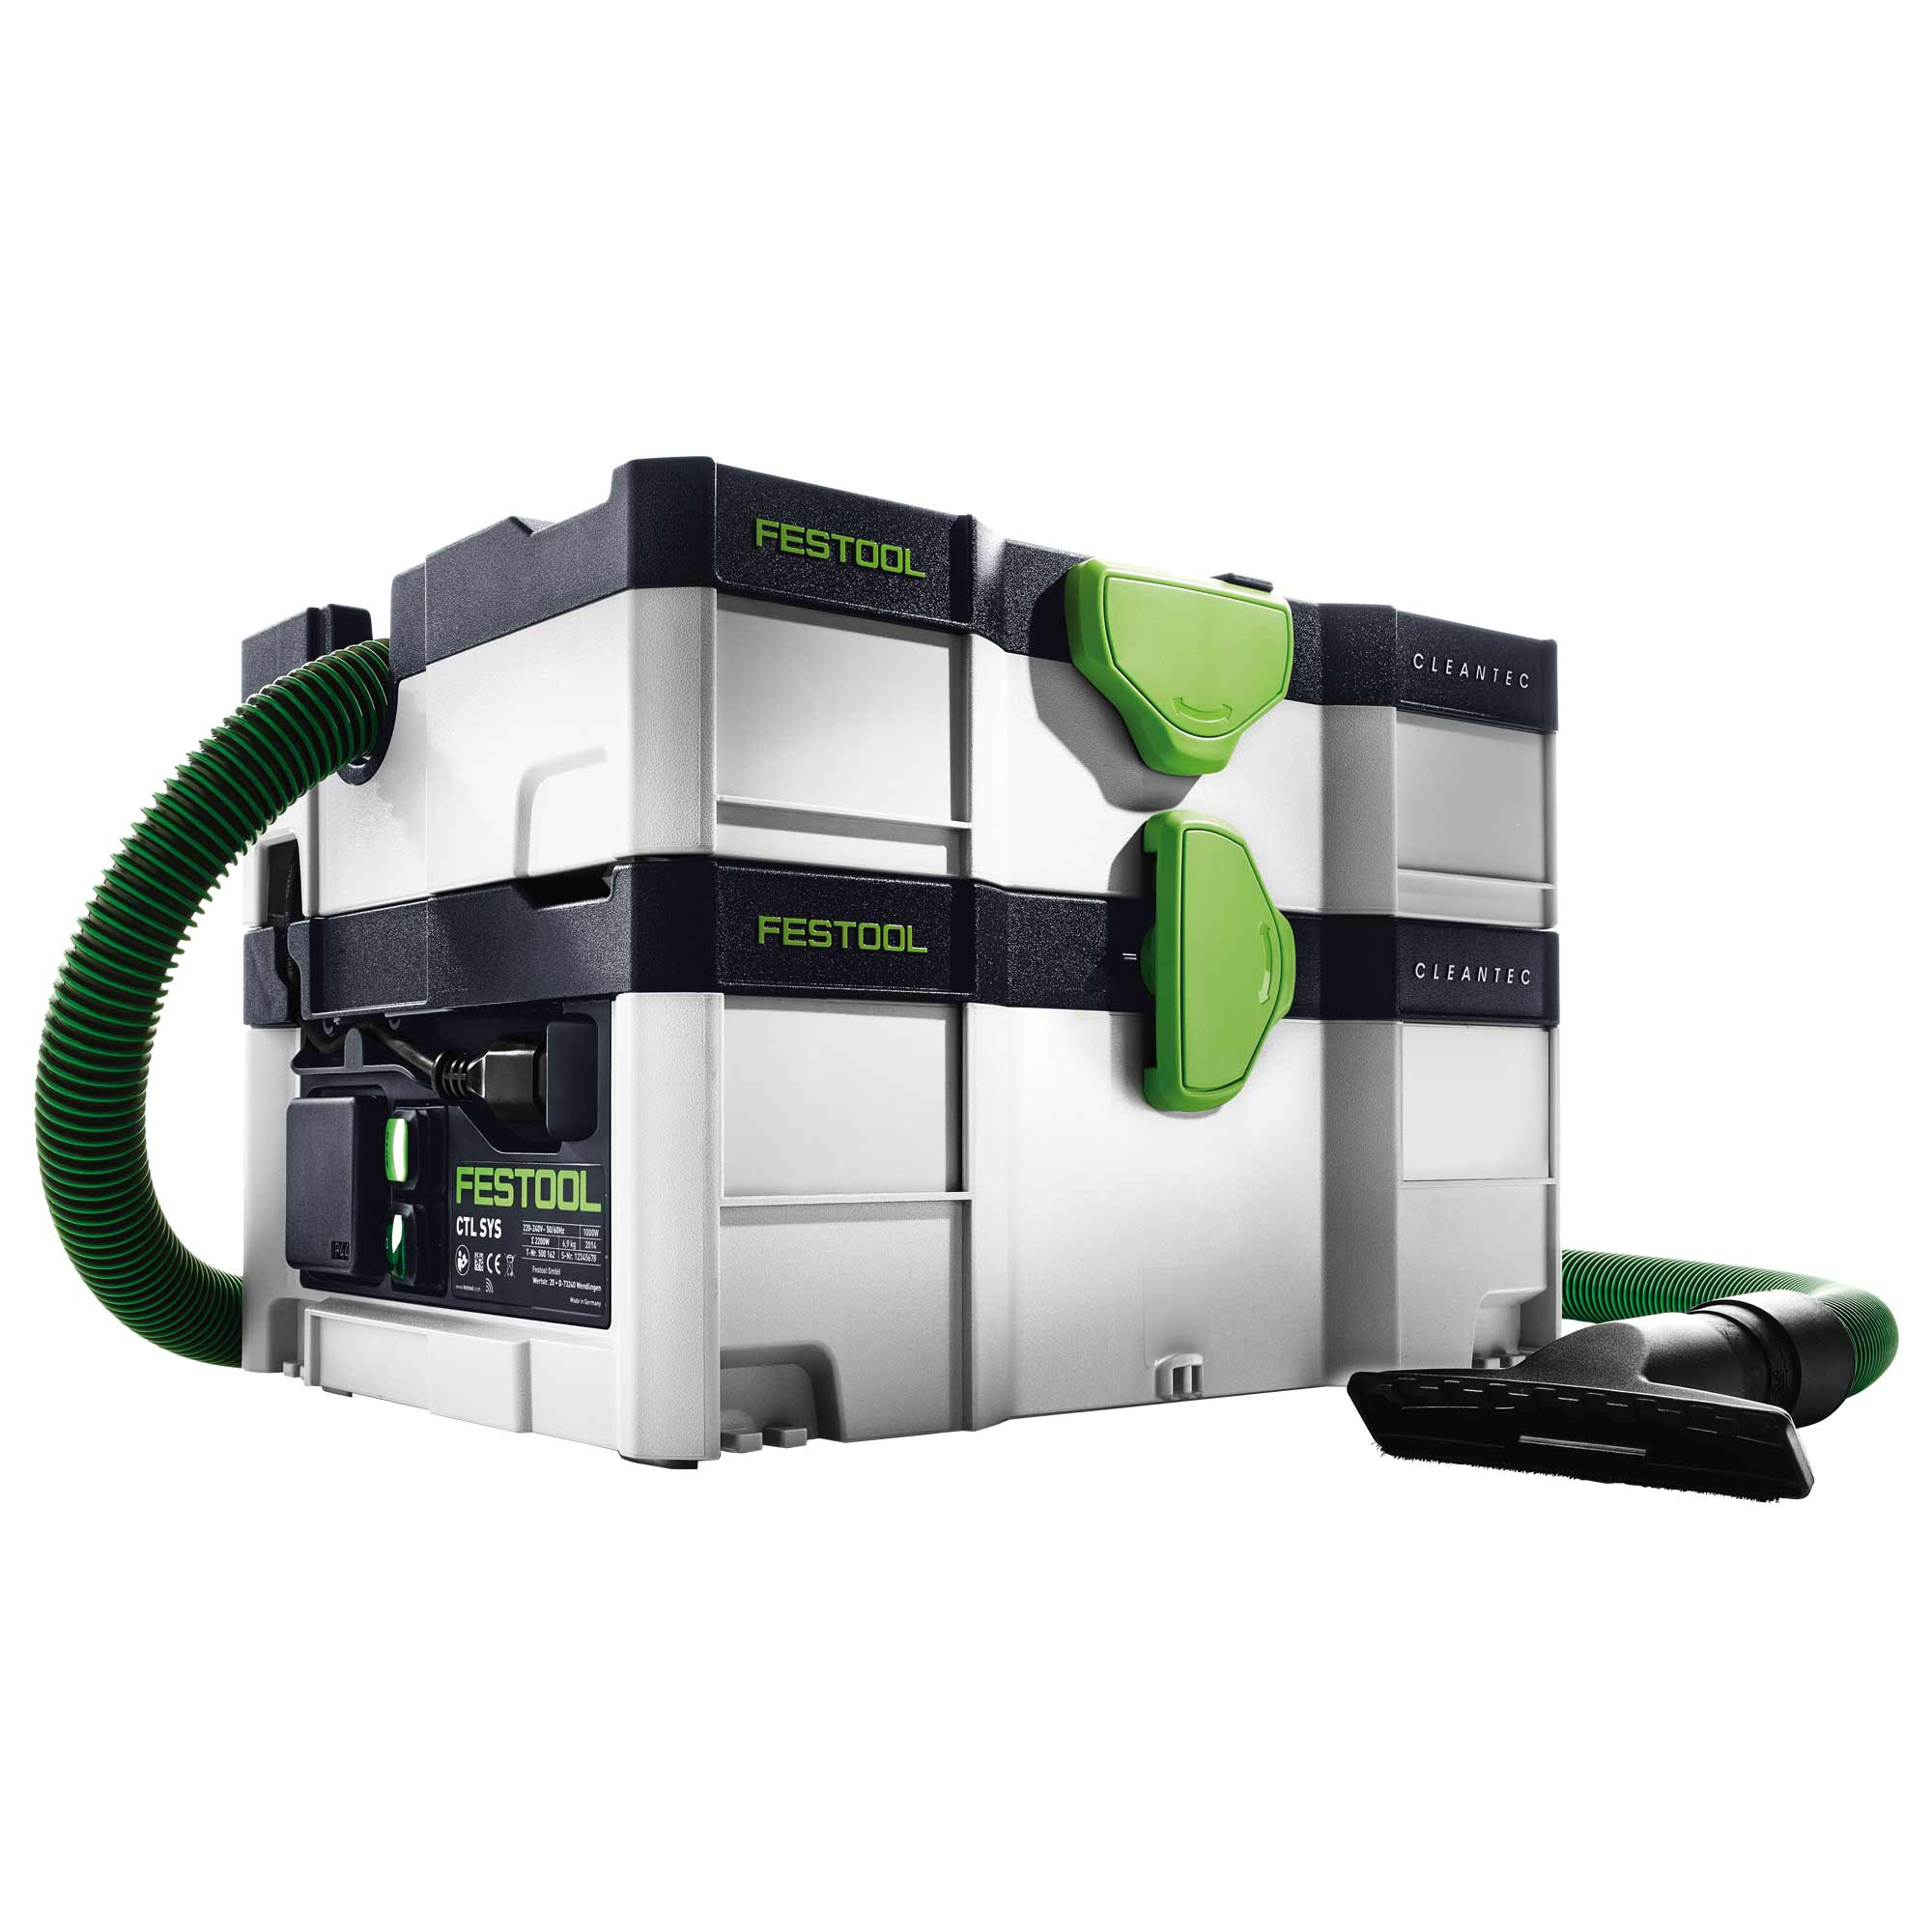 Festool Ctl Sys Cleantec Festool 4 5 Litre Systainer